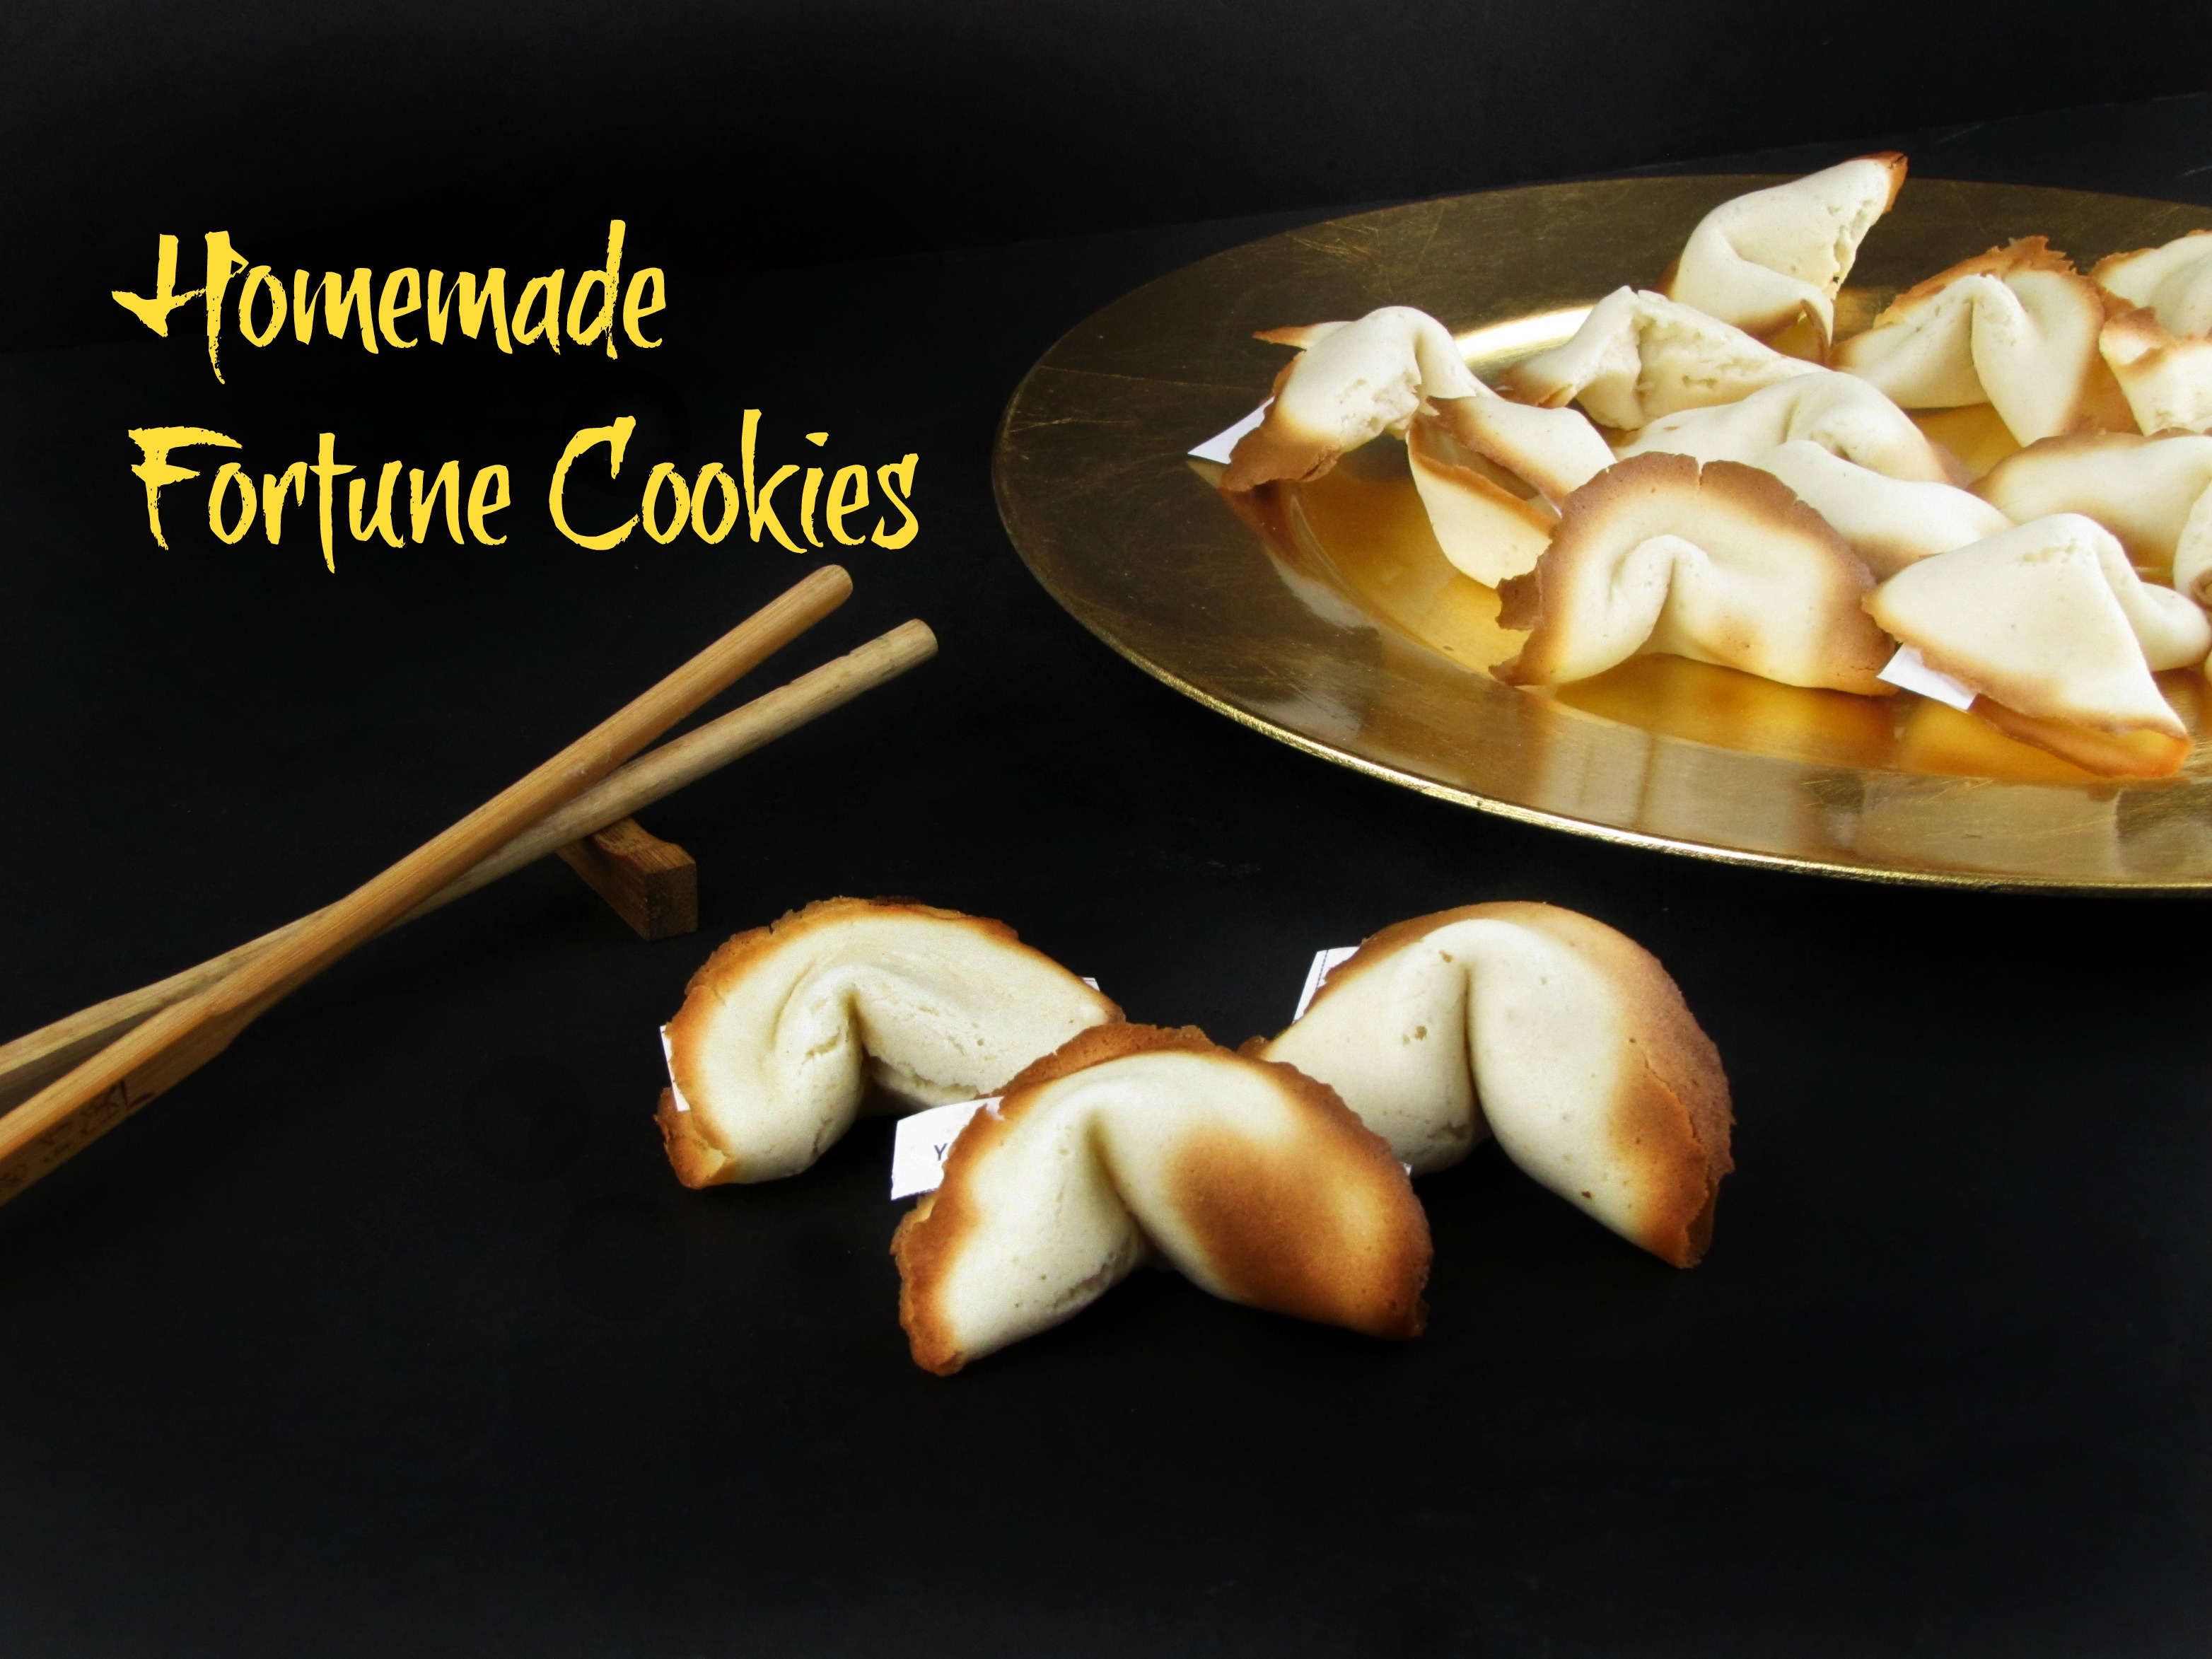 Homemade Fortune Cookies.